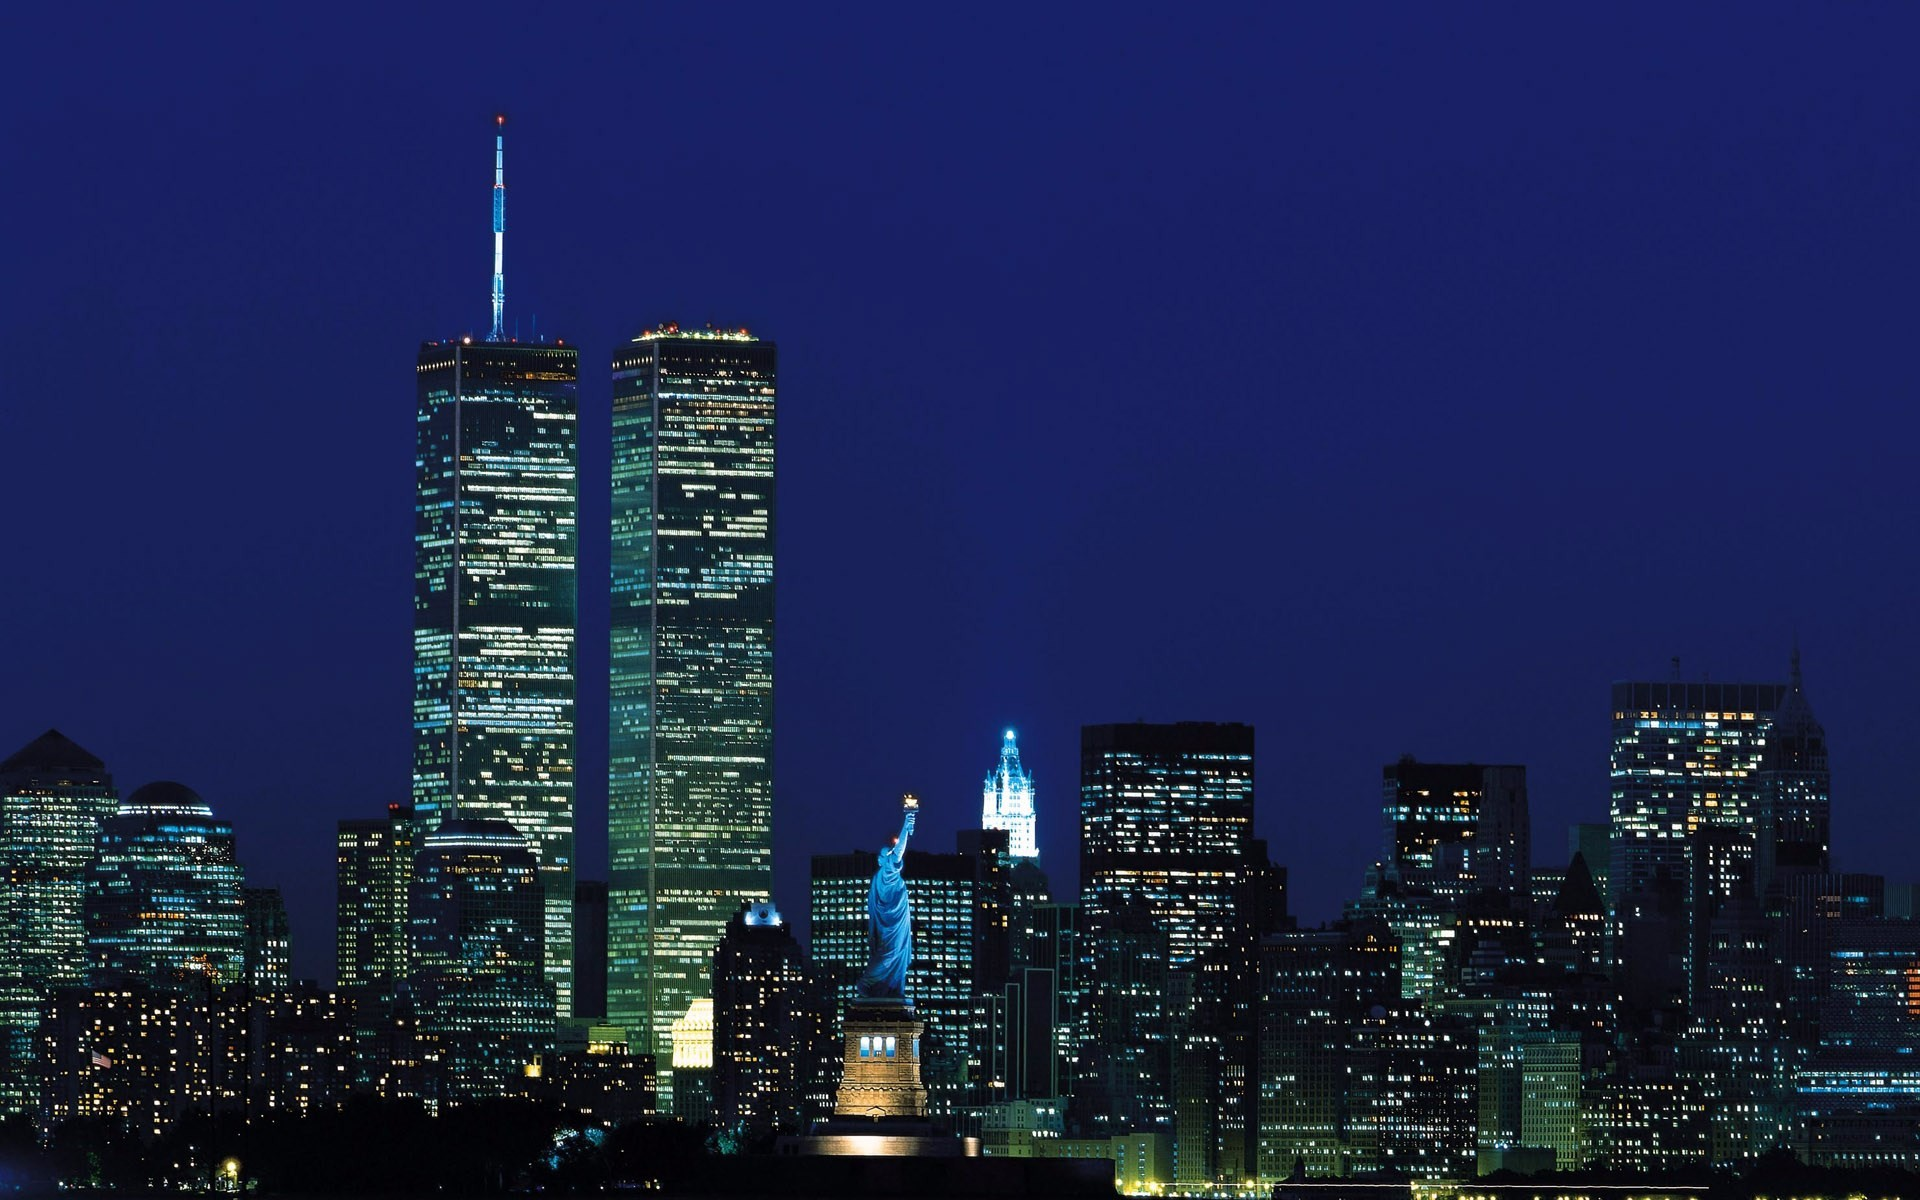 px High Quality world trade center image by Stan Nash-Williams  for – pocketfullofgrace